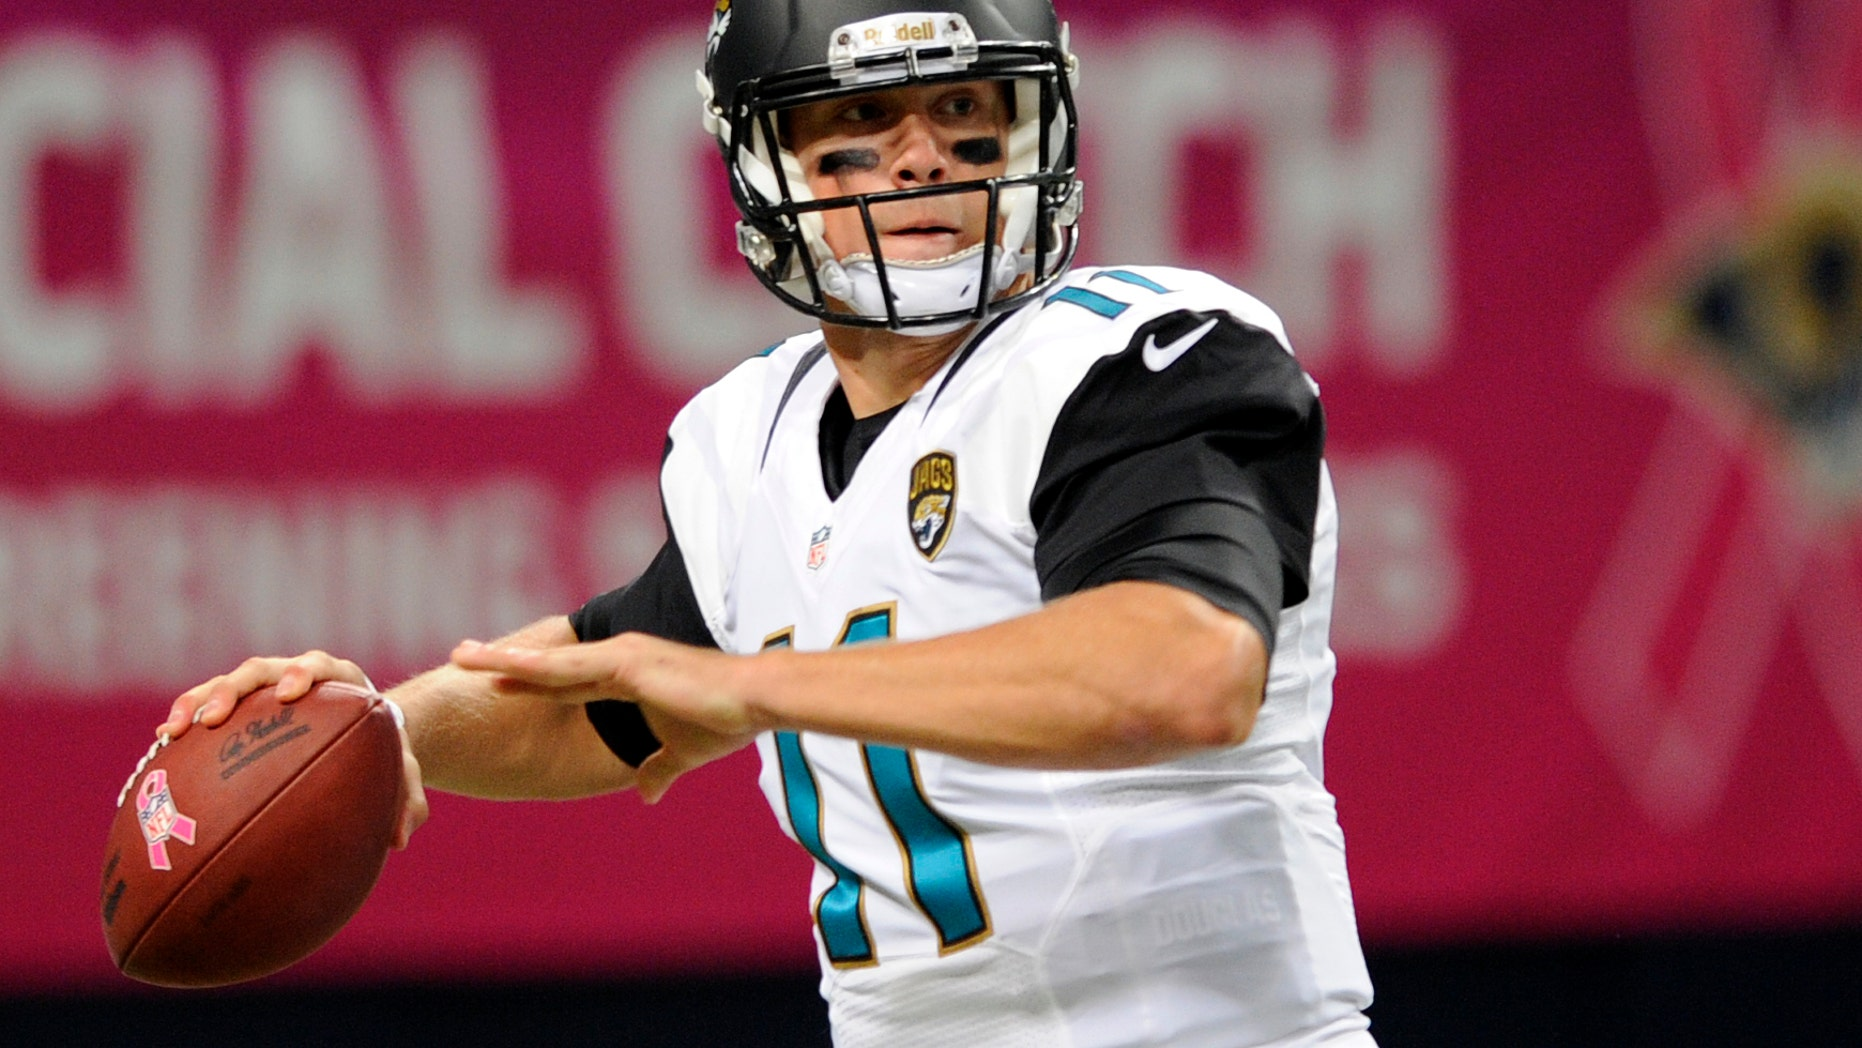 Jacksonville Jaguars quarterback Blaine Gabbert throws during the first quarter of an NFL football game against the St. Louis Rams Sunday, Oct. 6, 2013, in St. Louis. (AP Photo/L.G. Patterson)